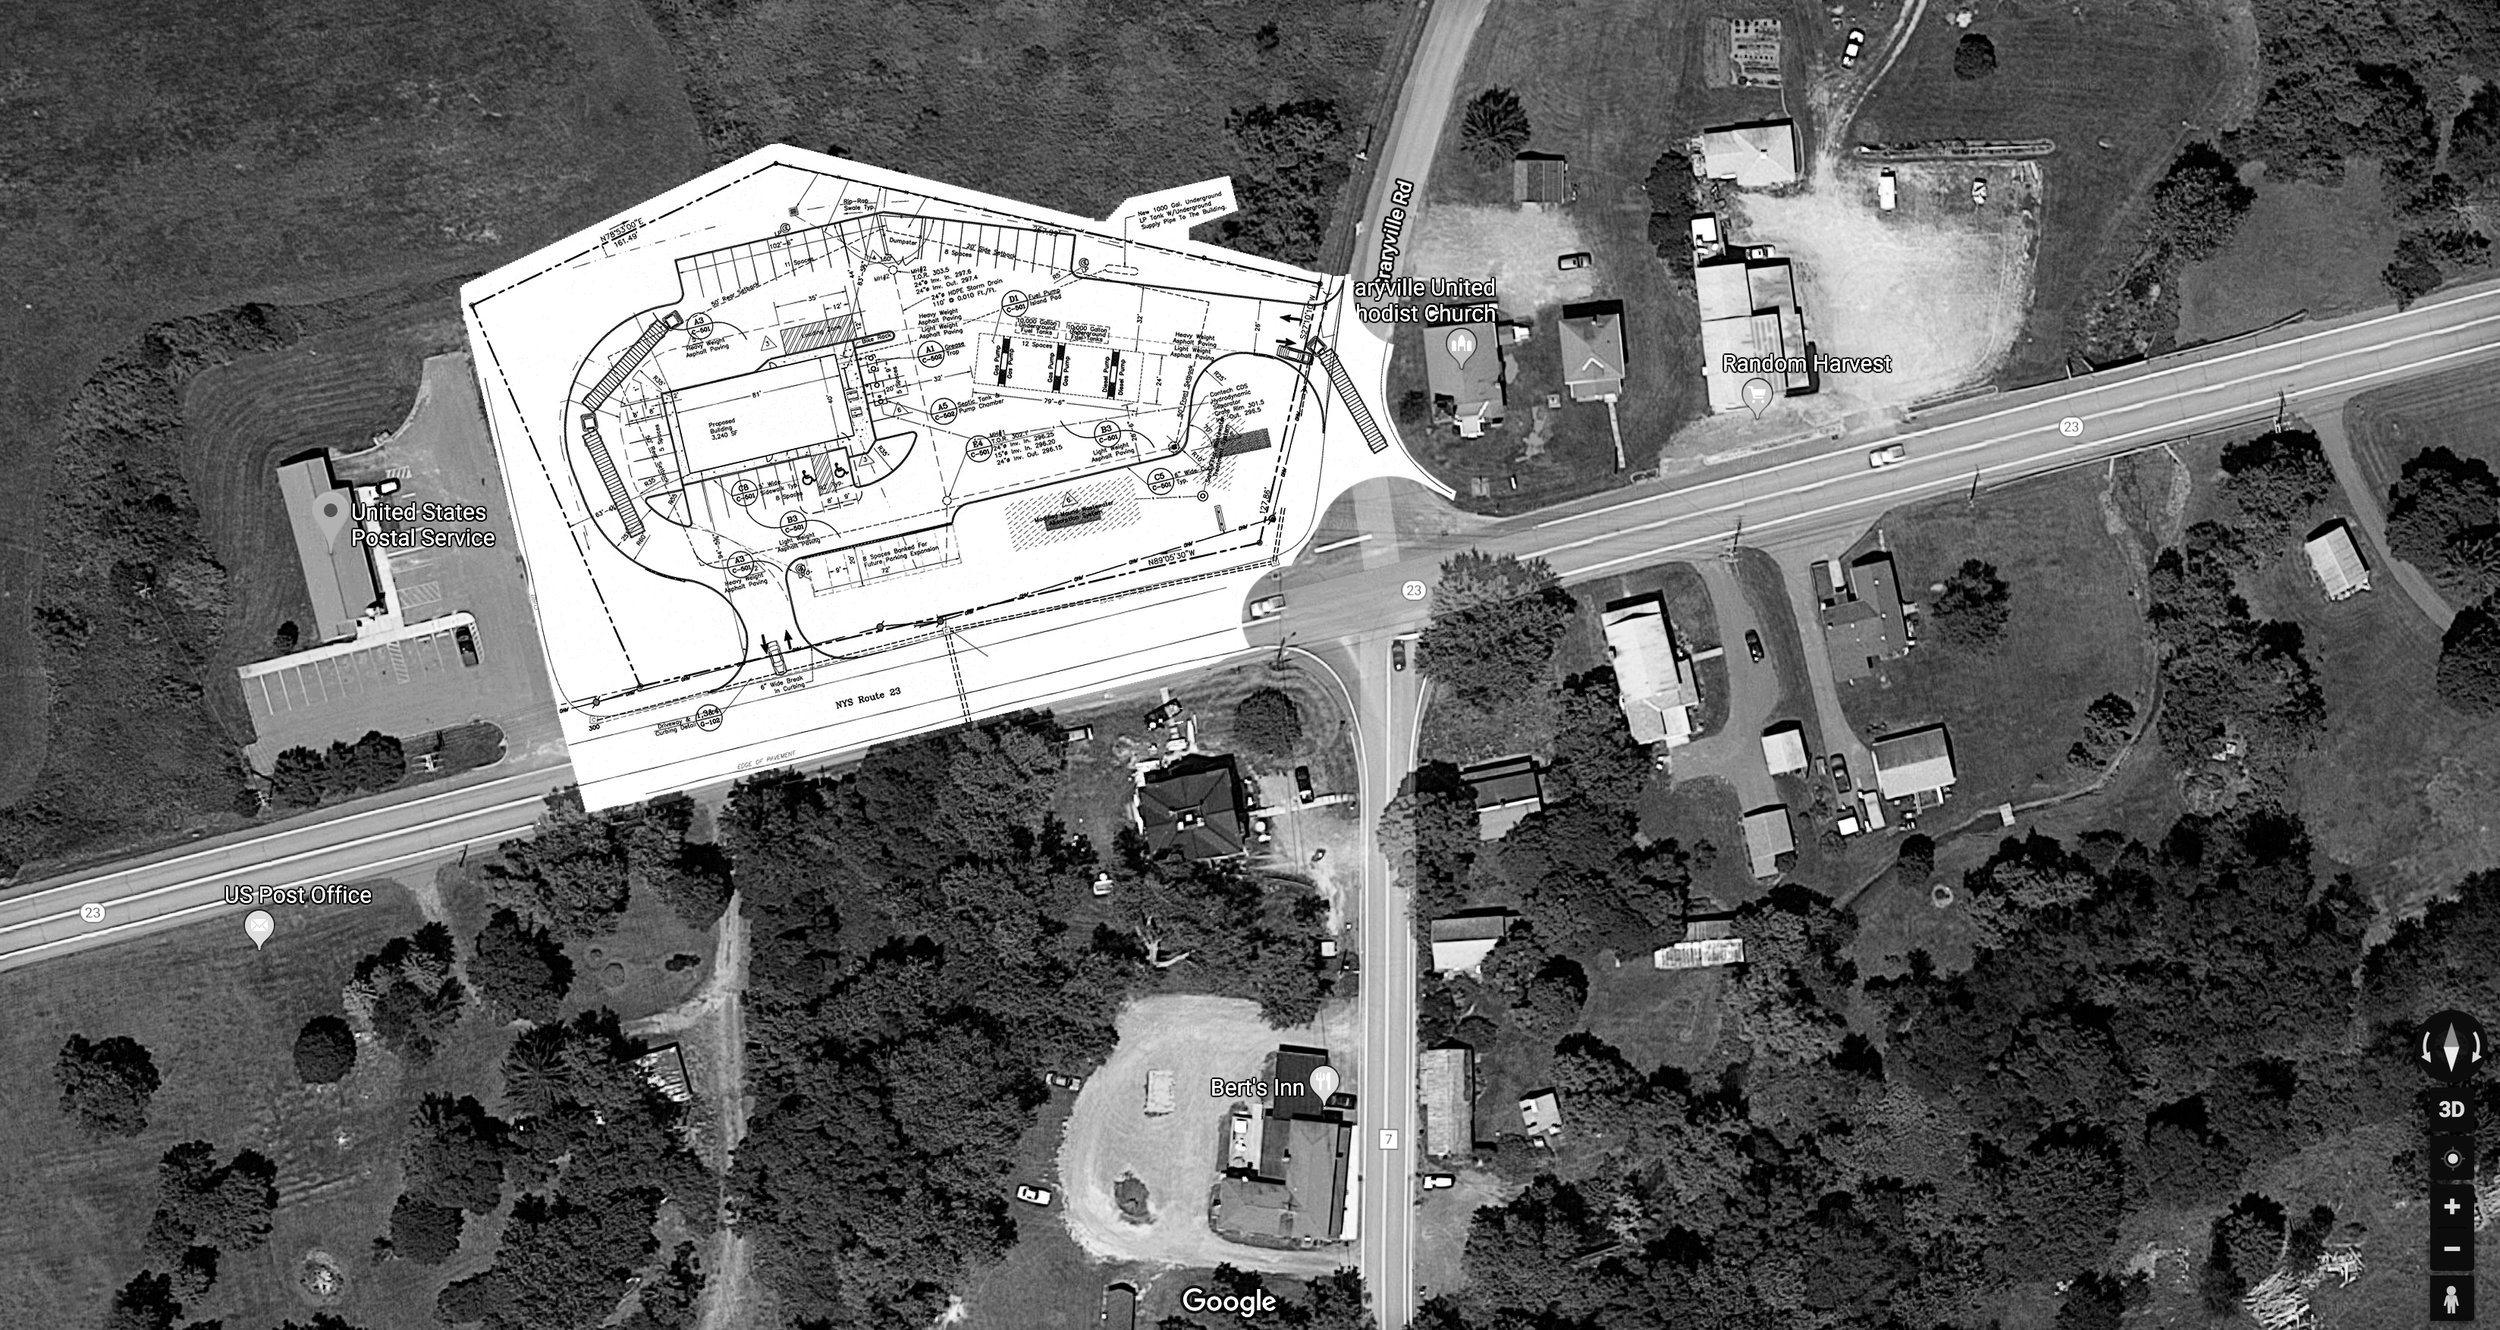 Save Craryville overlays site plan on aerial map